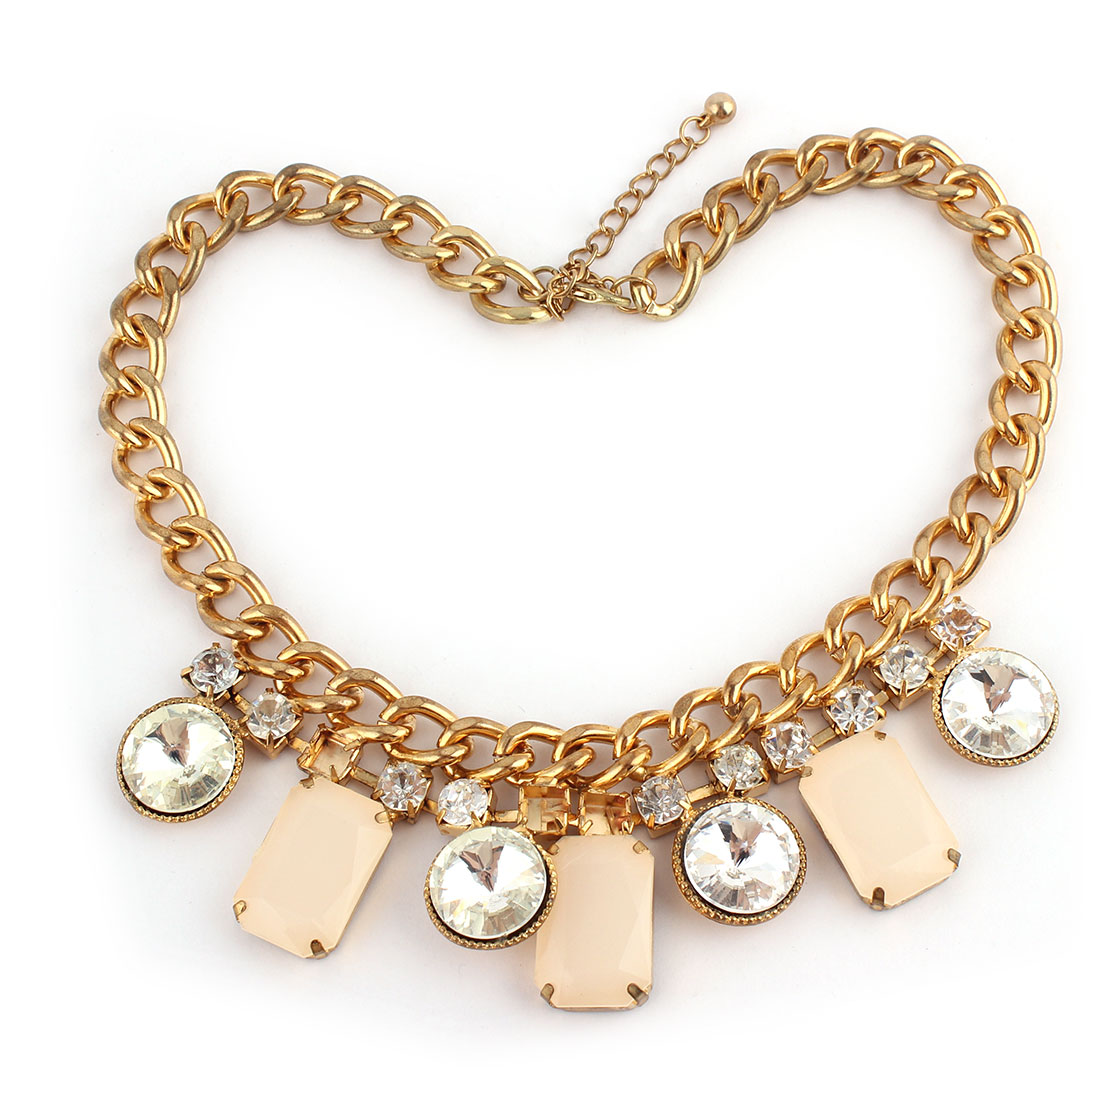 Metal Rhinestone Design Pendant Lobster Buckle Strip Link Thick Chain Necklace